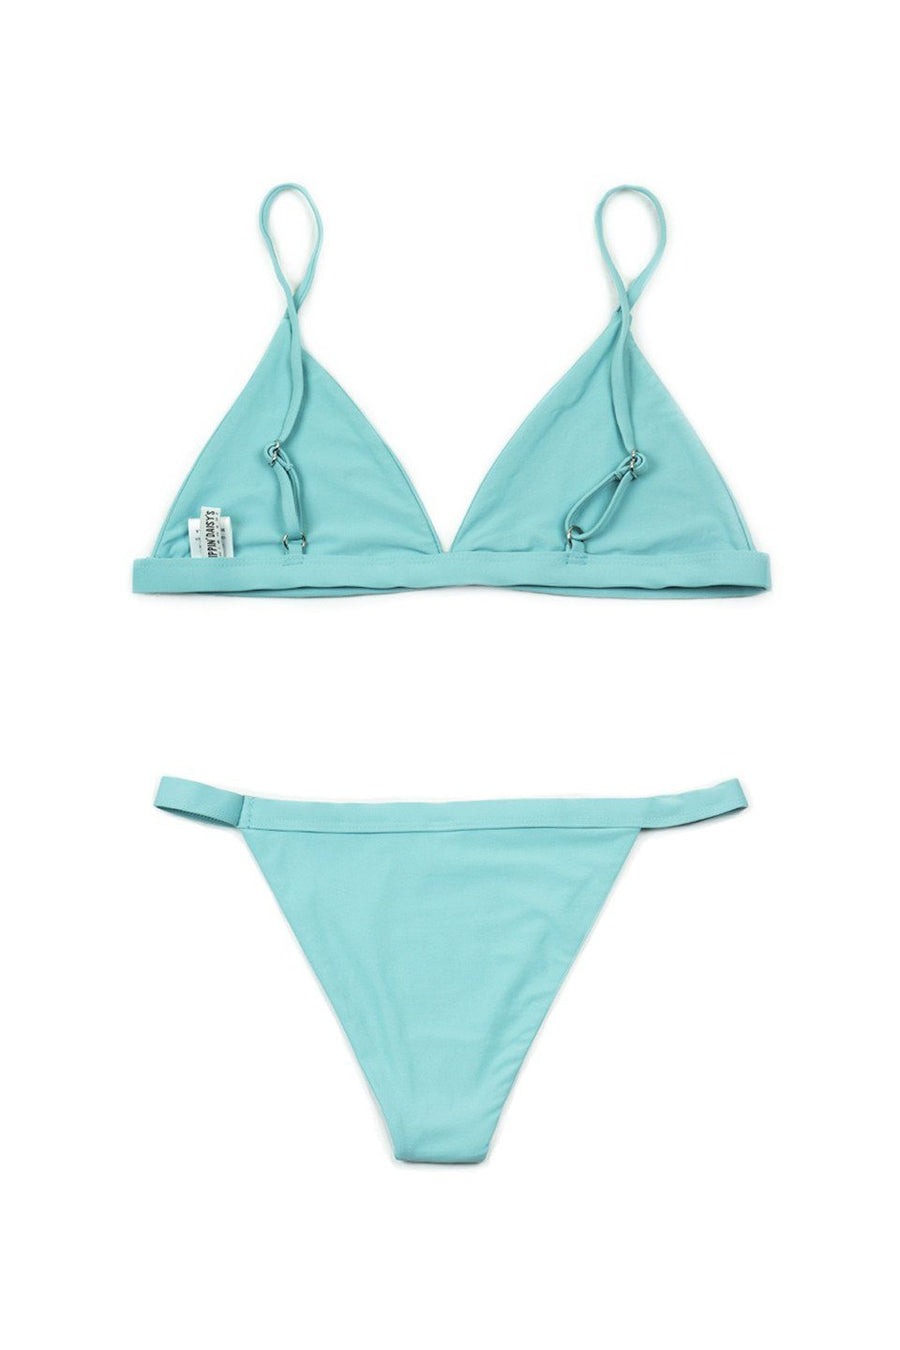 Seafoam Two-Piece Over-the-Shoulder Triangle Top with Banded Bottom - Front - Dippin' Daisy's Swimwear